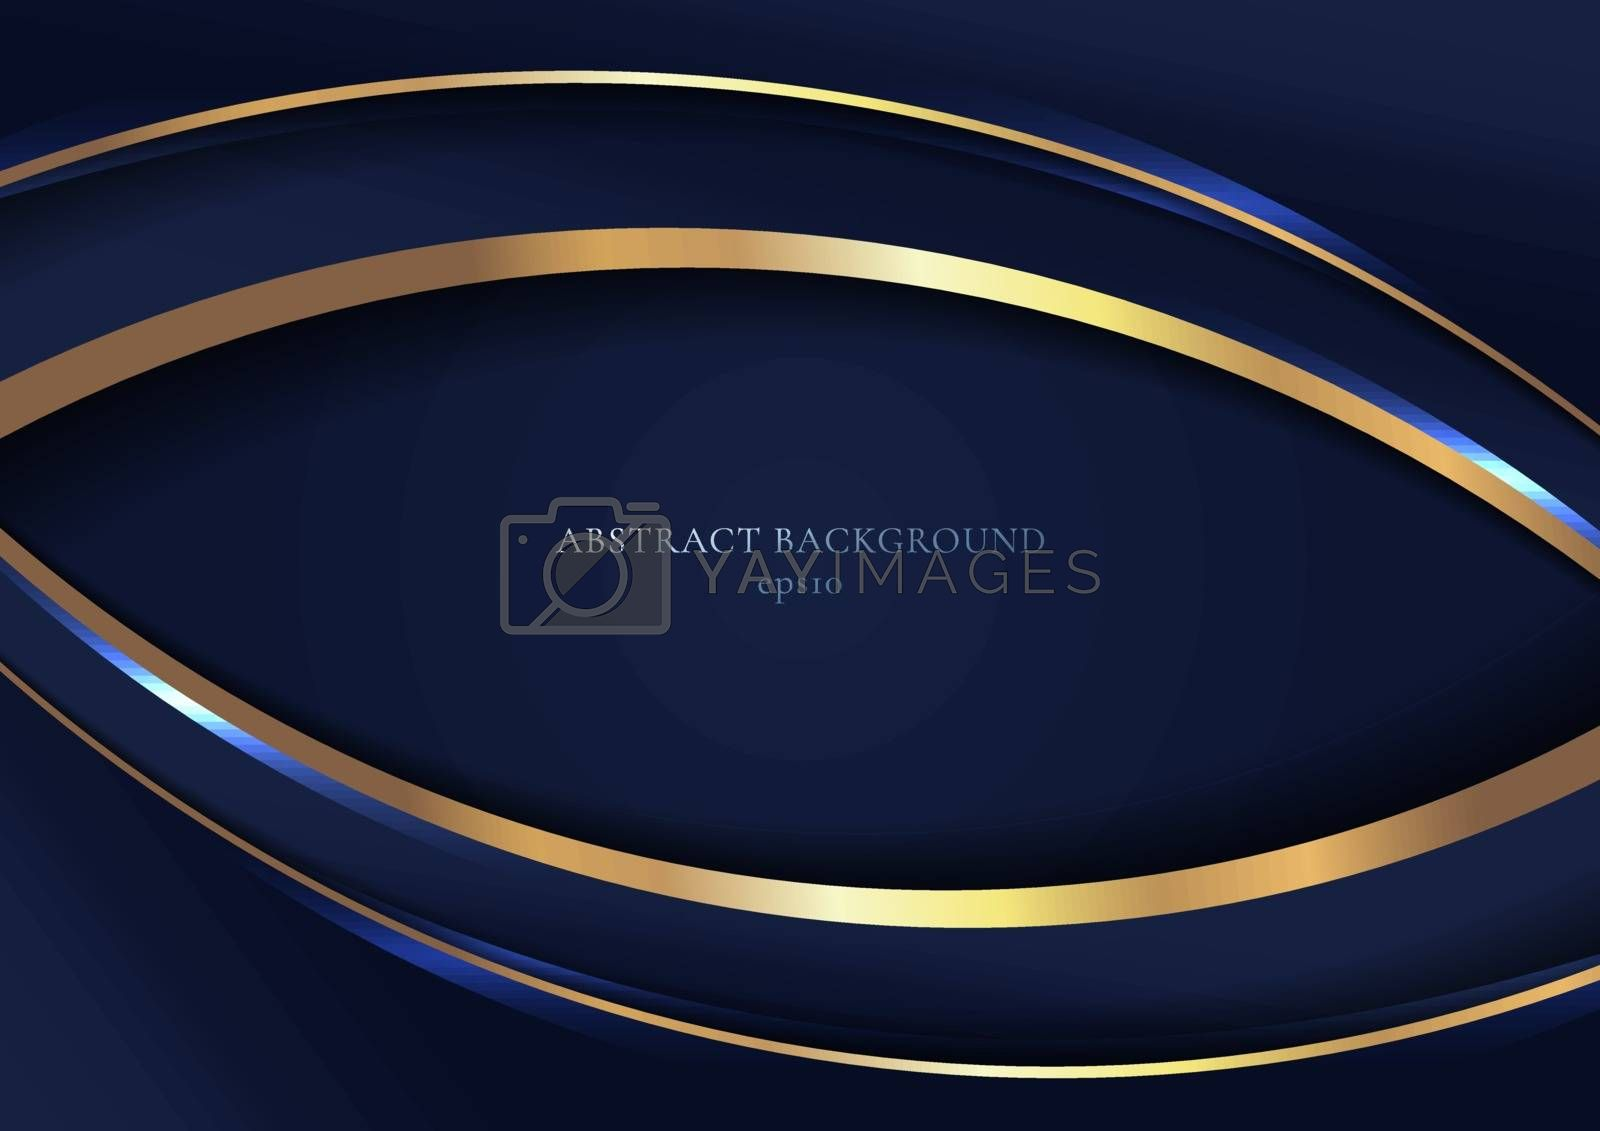 Abstract elegant blue curved geometric overlap layers with stripe golden line and lighting on dark blue background. Luxury style. Vector illustration